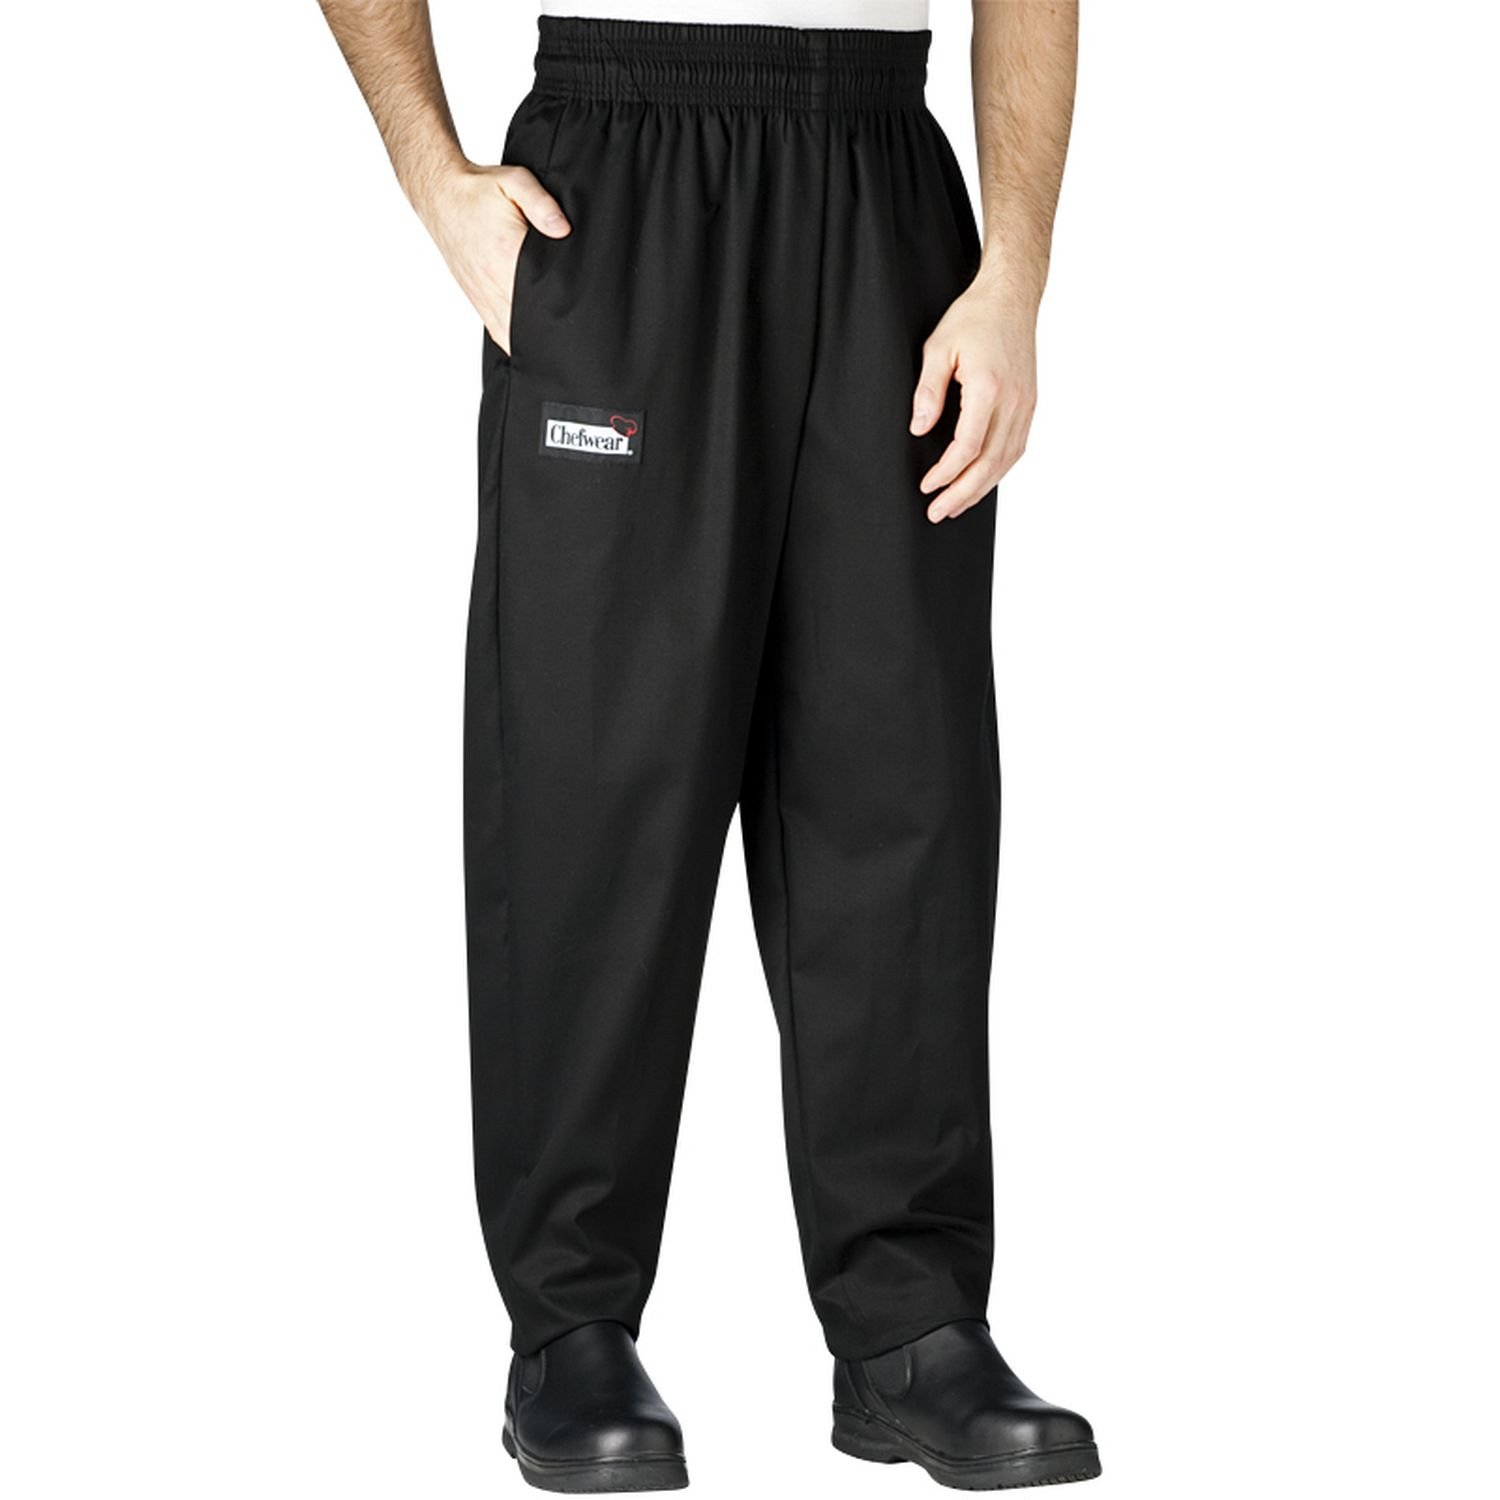 Chefwear Men's Unisex Baggy Cotton Chef Pant, Black, Large